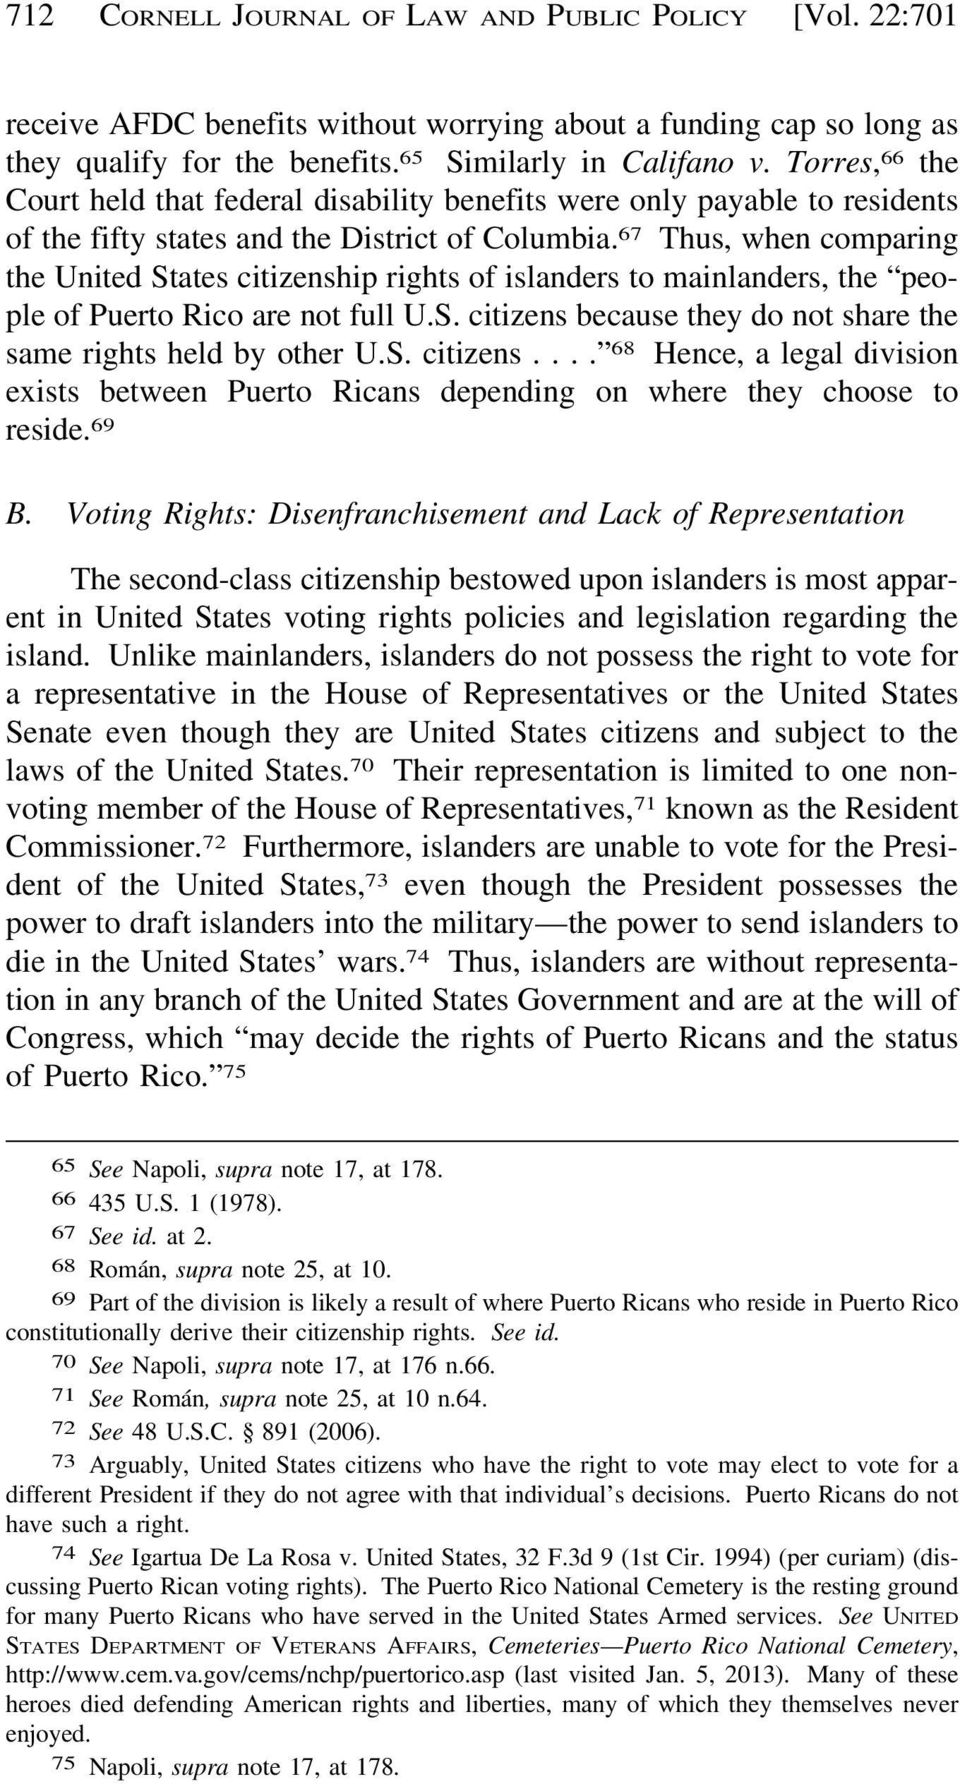 67 Thus, when comparing the United States citizenship rights of islanders to mainlanders, the people of Puerto Rico are not full U.S. citizens because they do not share the same rights held by other U.